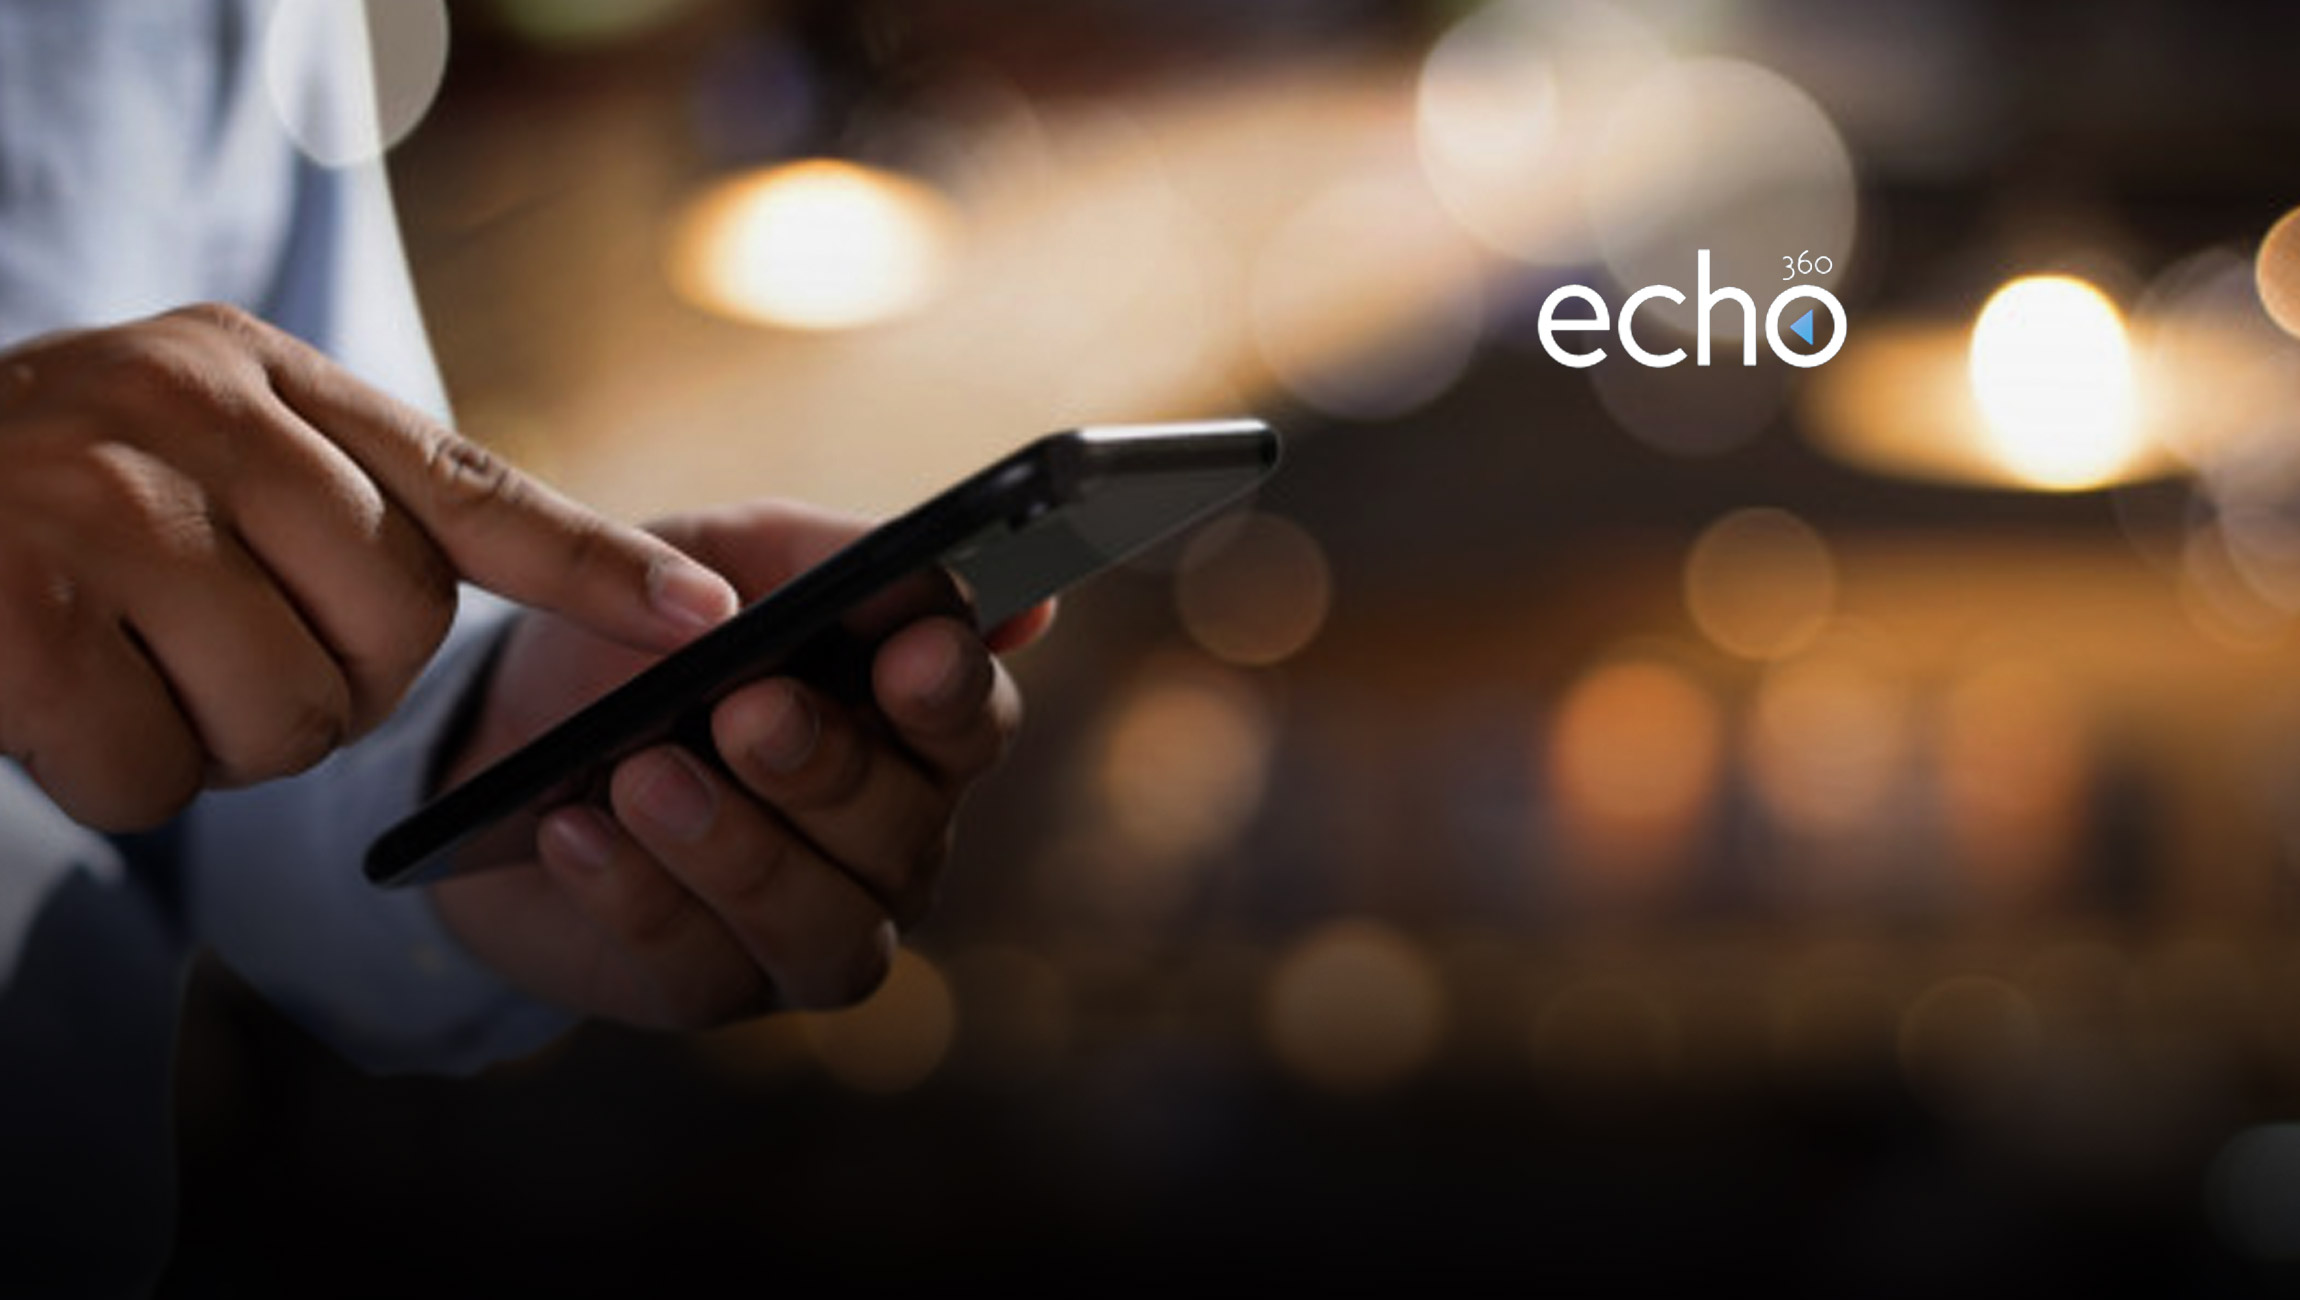 Echo360 Recognized as Best Video-Based Learning Solution for Second Year in a Row